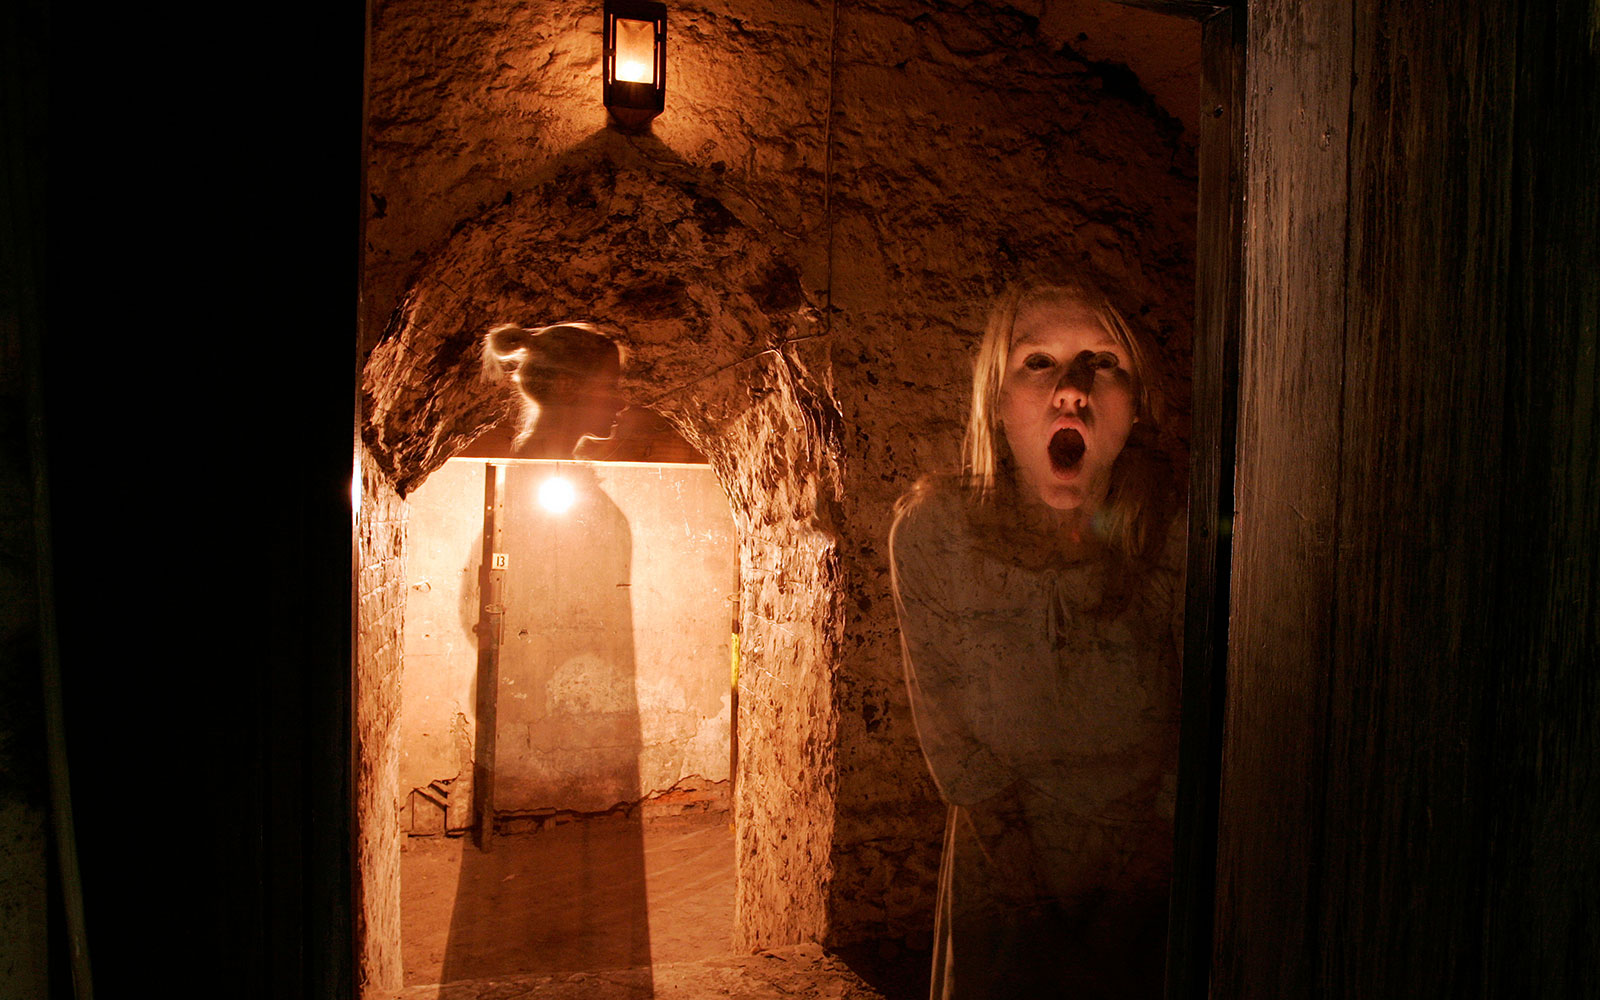 Tours Worth Taking: Evening of Ghosts and Ghouls Tour in Edinburgh